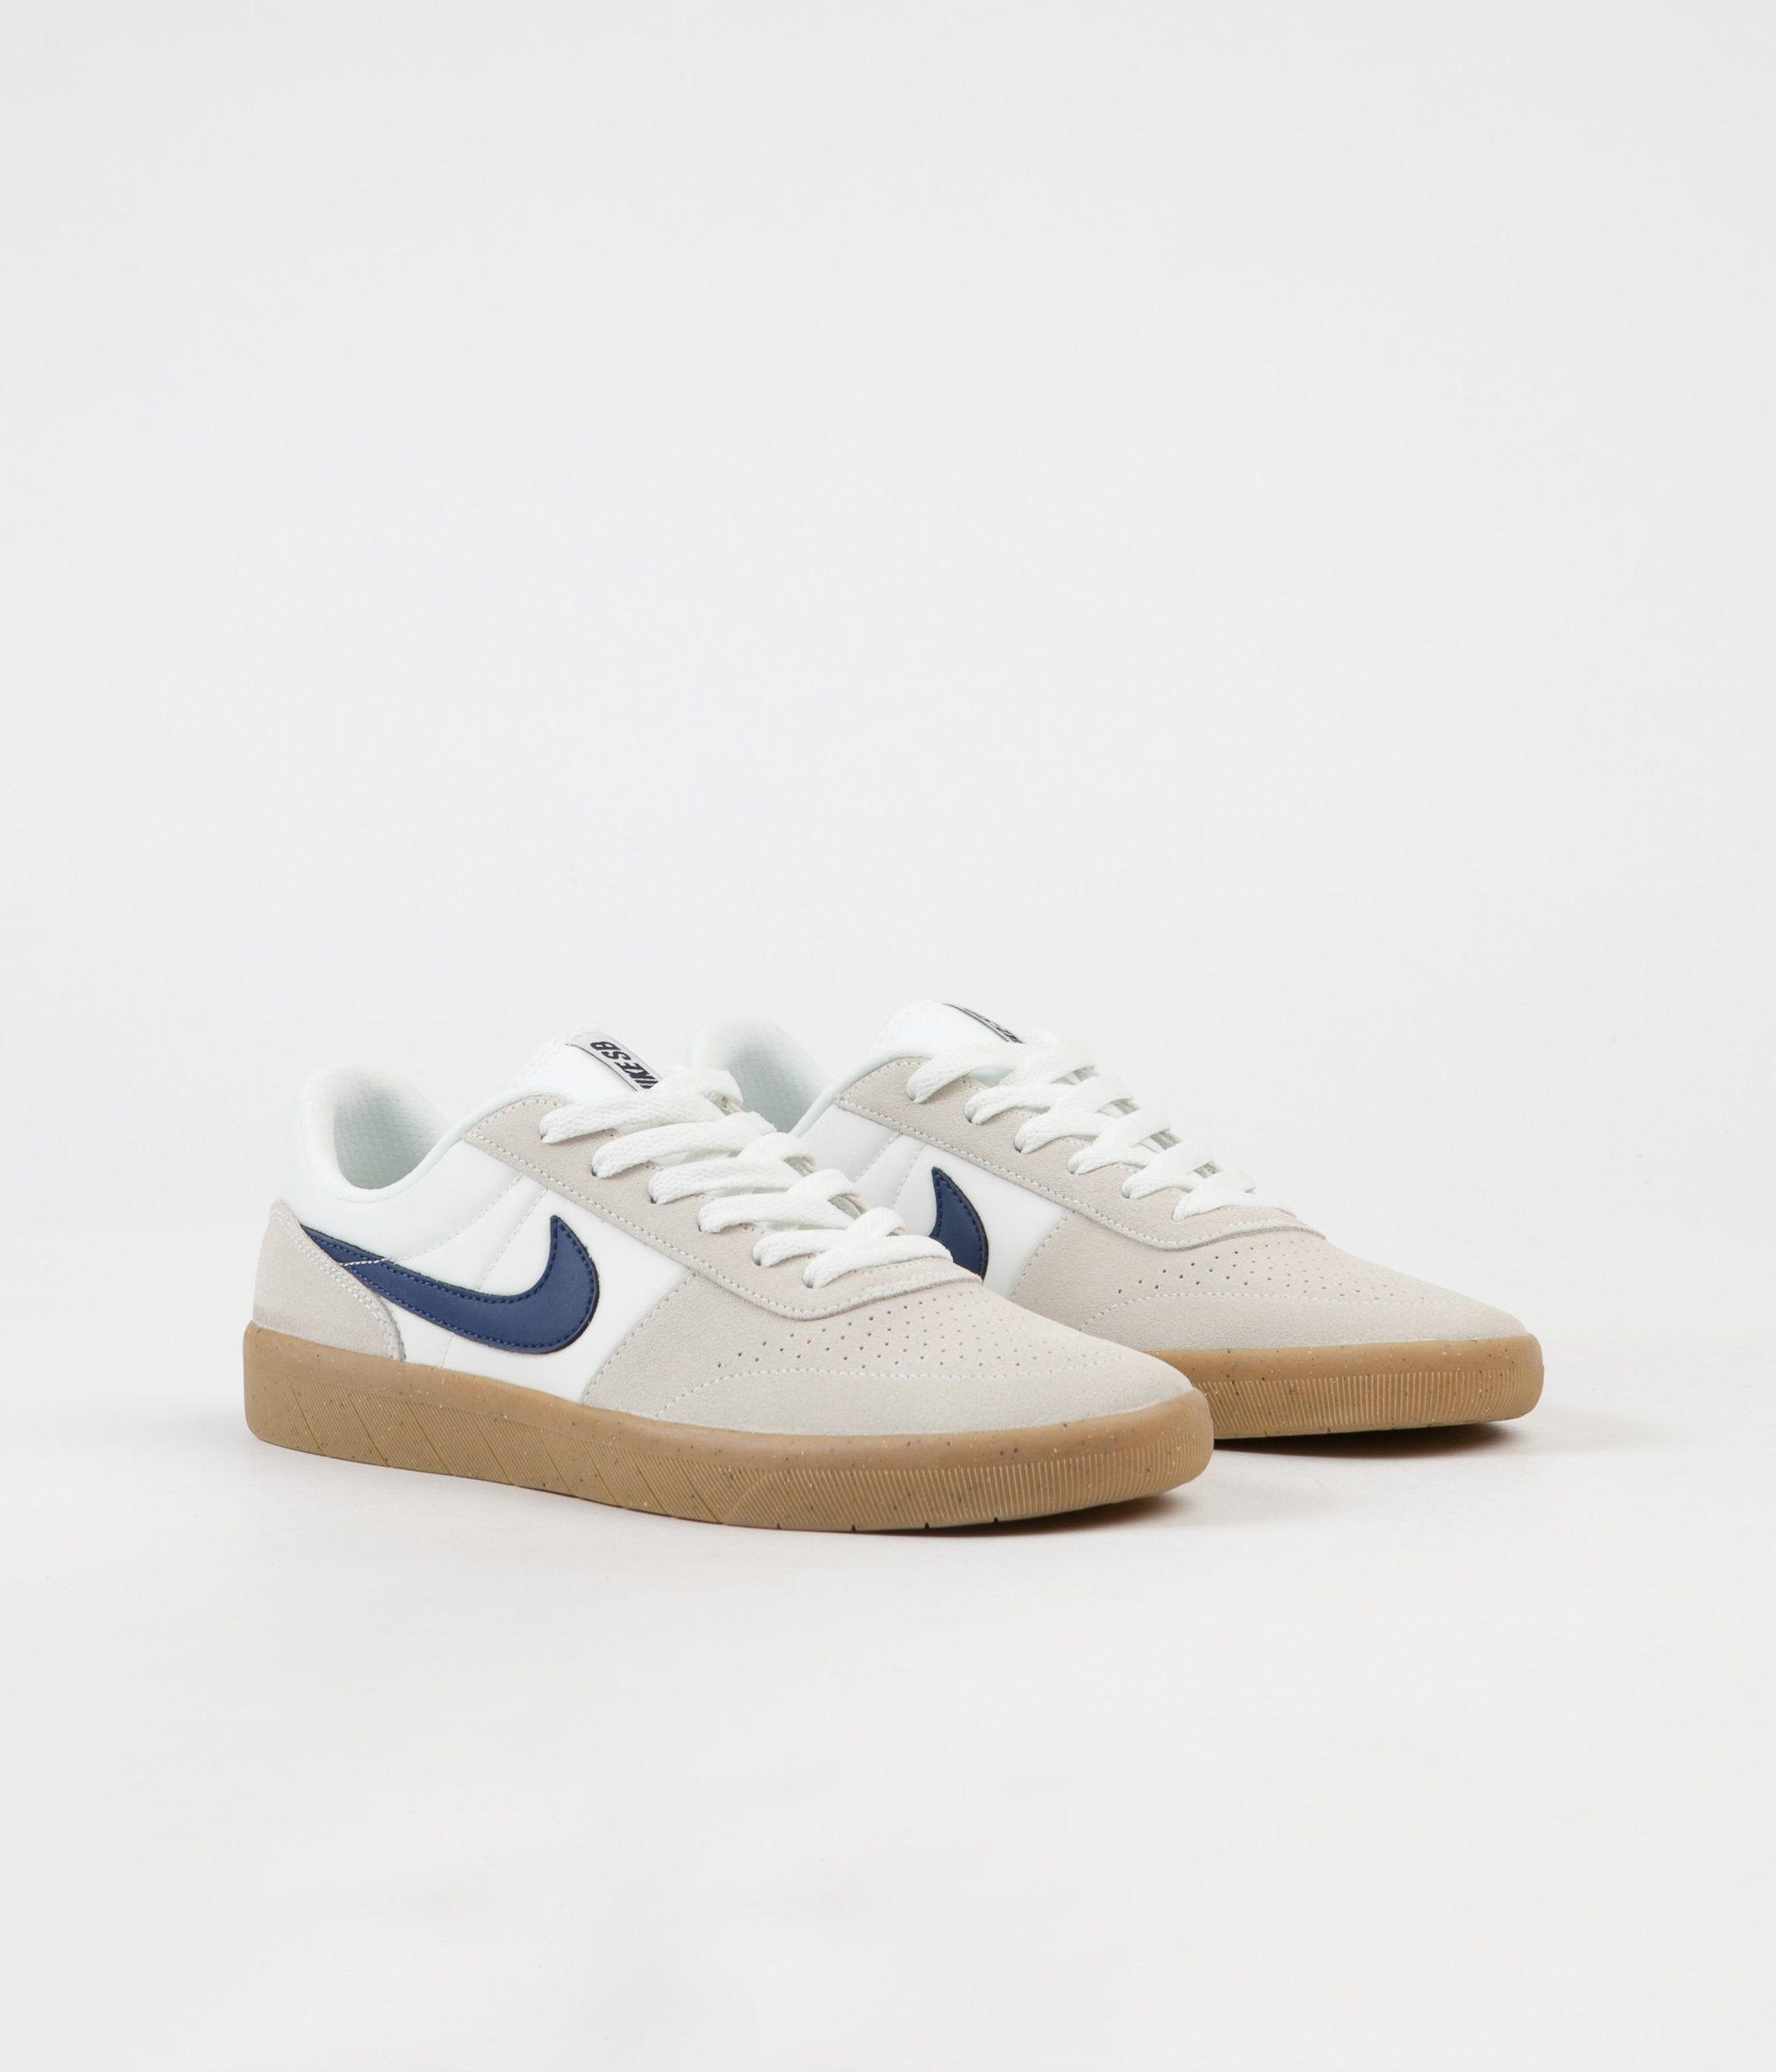 daf6b389a906 Nike SB Team Classic Shoes - Summit White   Blue Void - White in ...